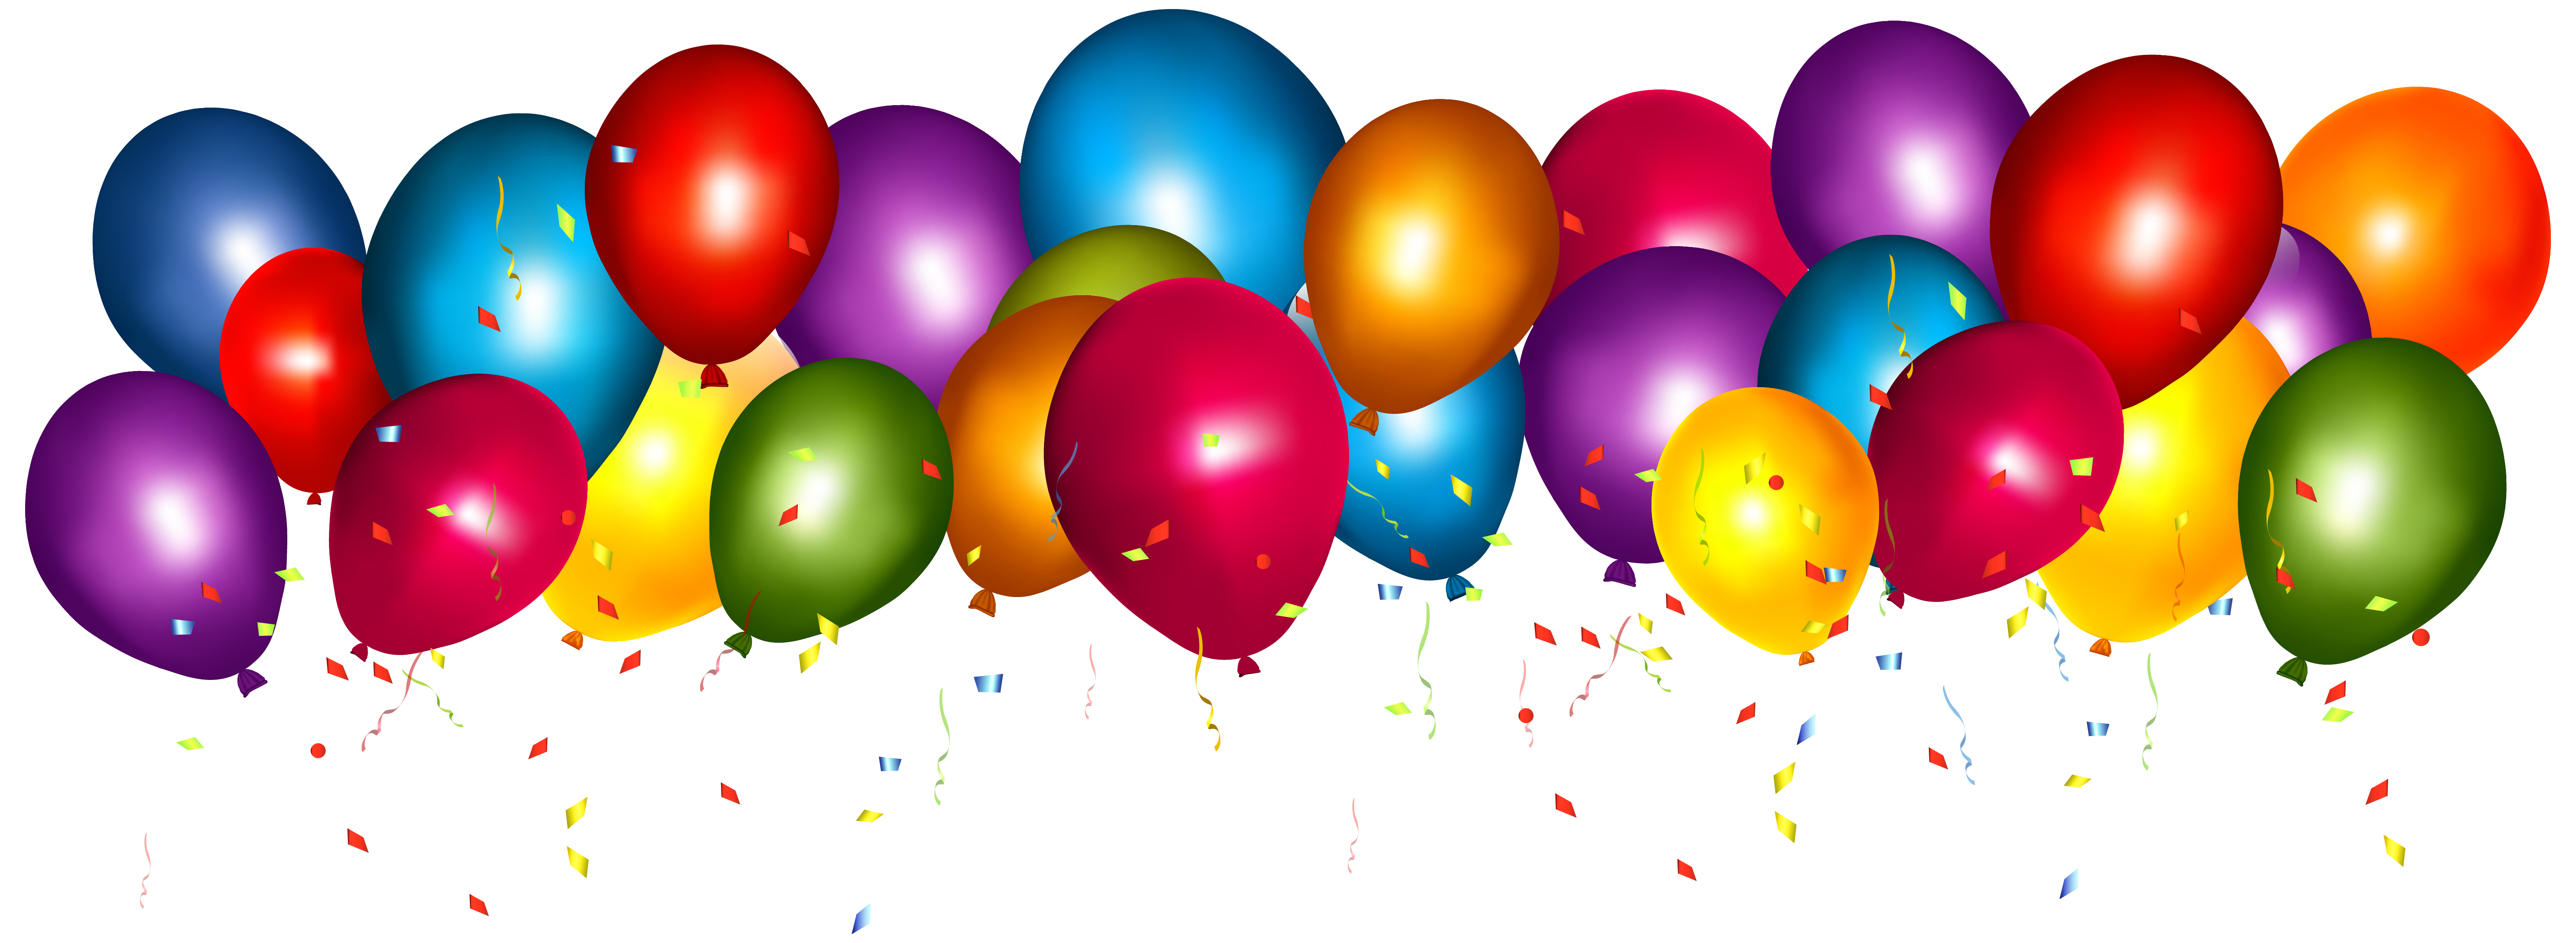 Grand opening balloons png. Transparent colorful with confetti